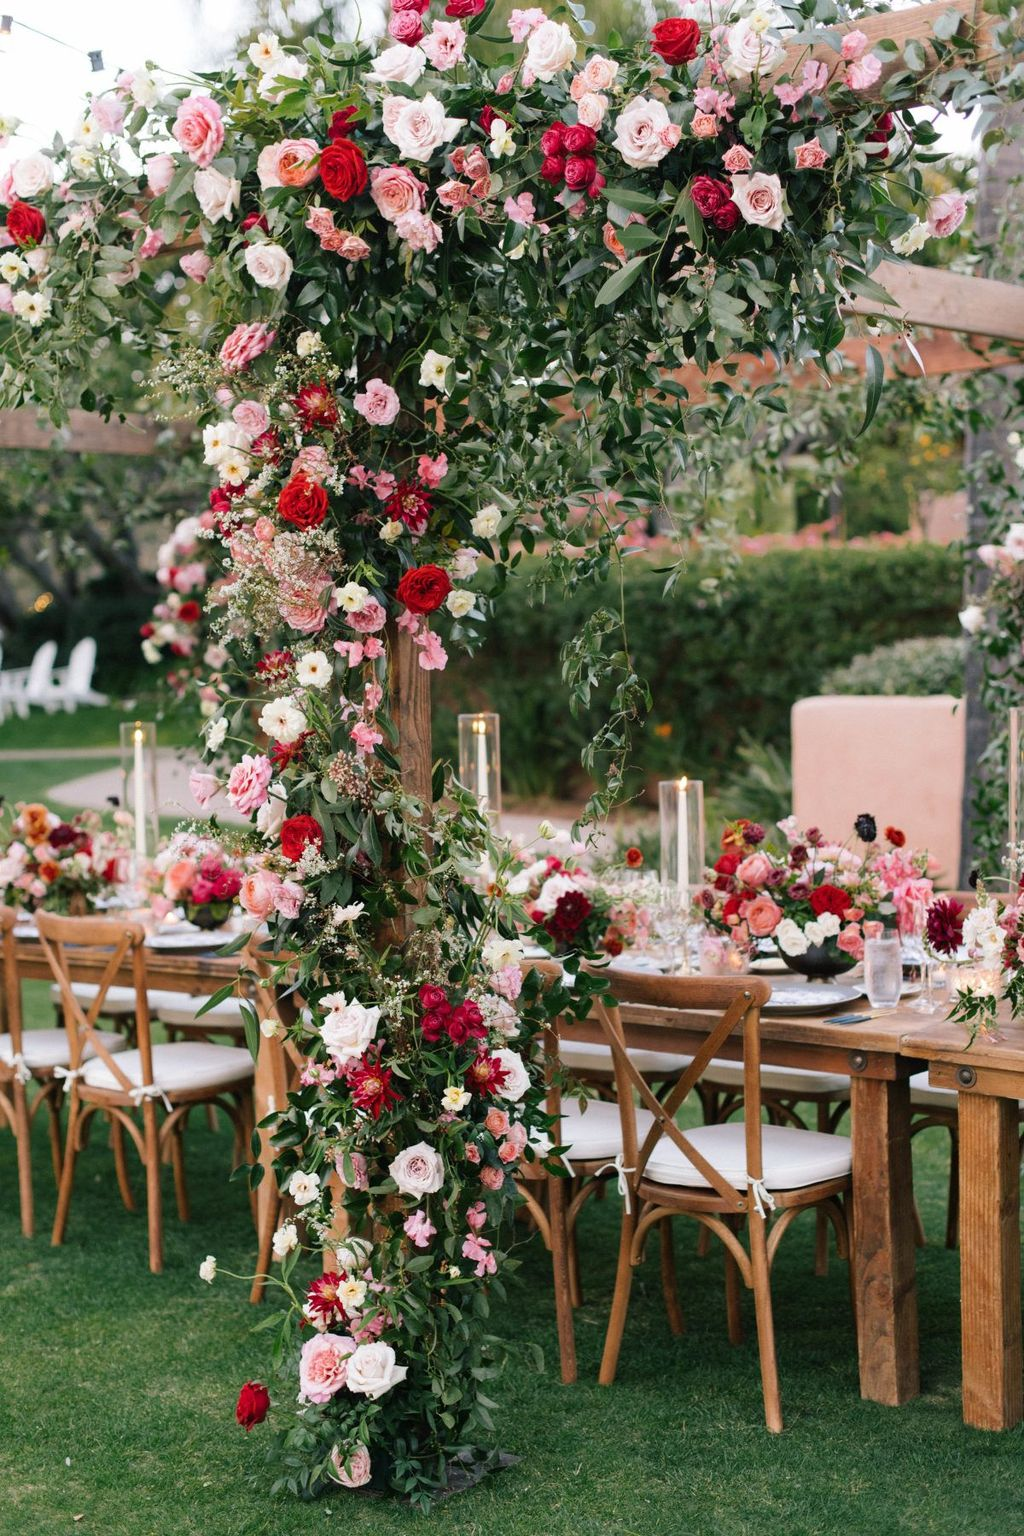 Fabulous Floral Theme Party Decor Ideas Best For Summertime 13